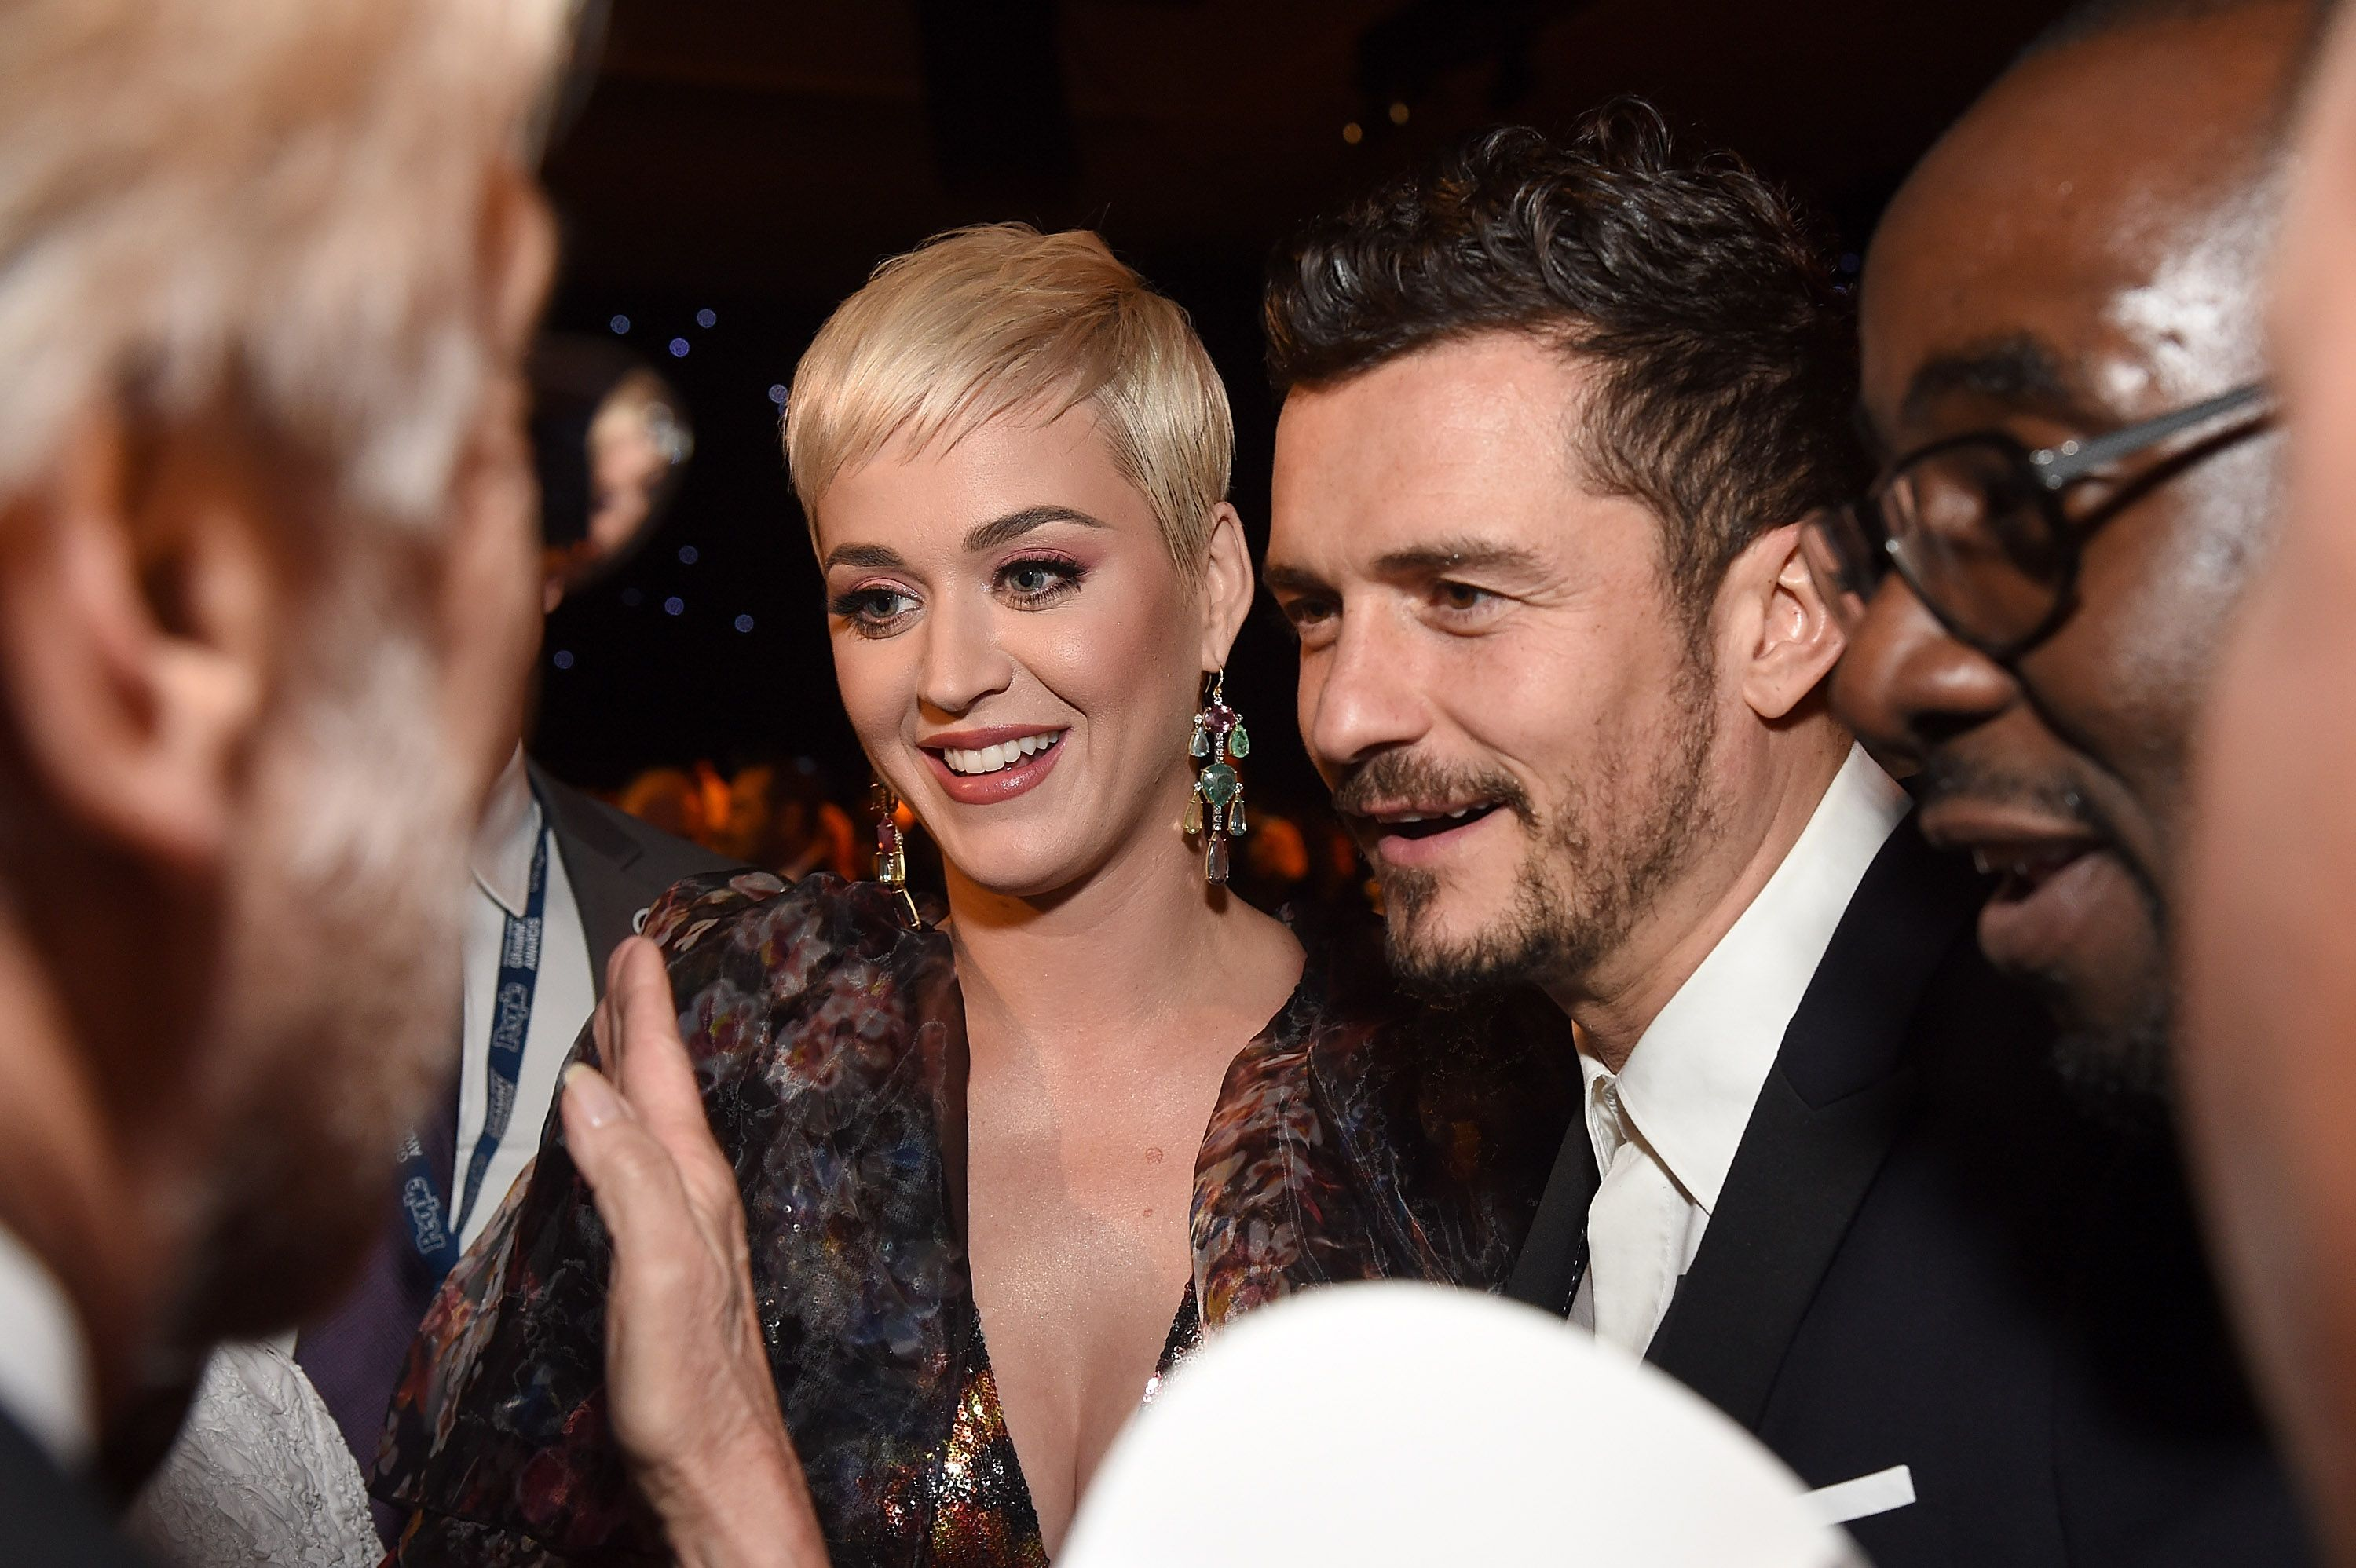 Katy Perry (L) and Orlando Bloom attend MusiCares Person of the Year honoring Dolly Parton at Los Angeles Convention Center on February 8, 2019 in Los Angeles, California. | Source: Getty Images